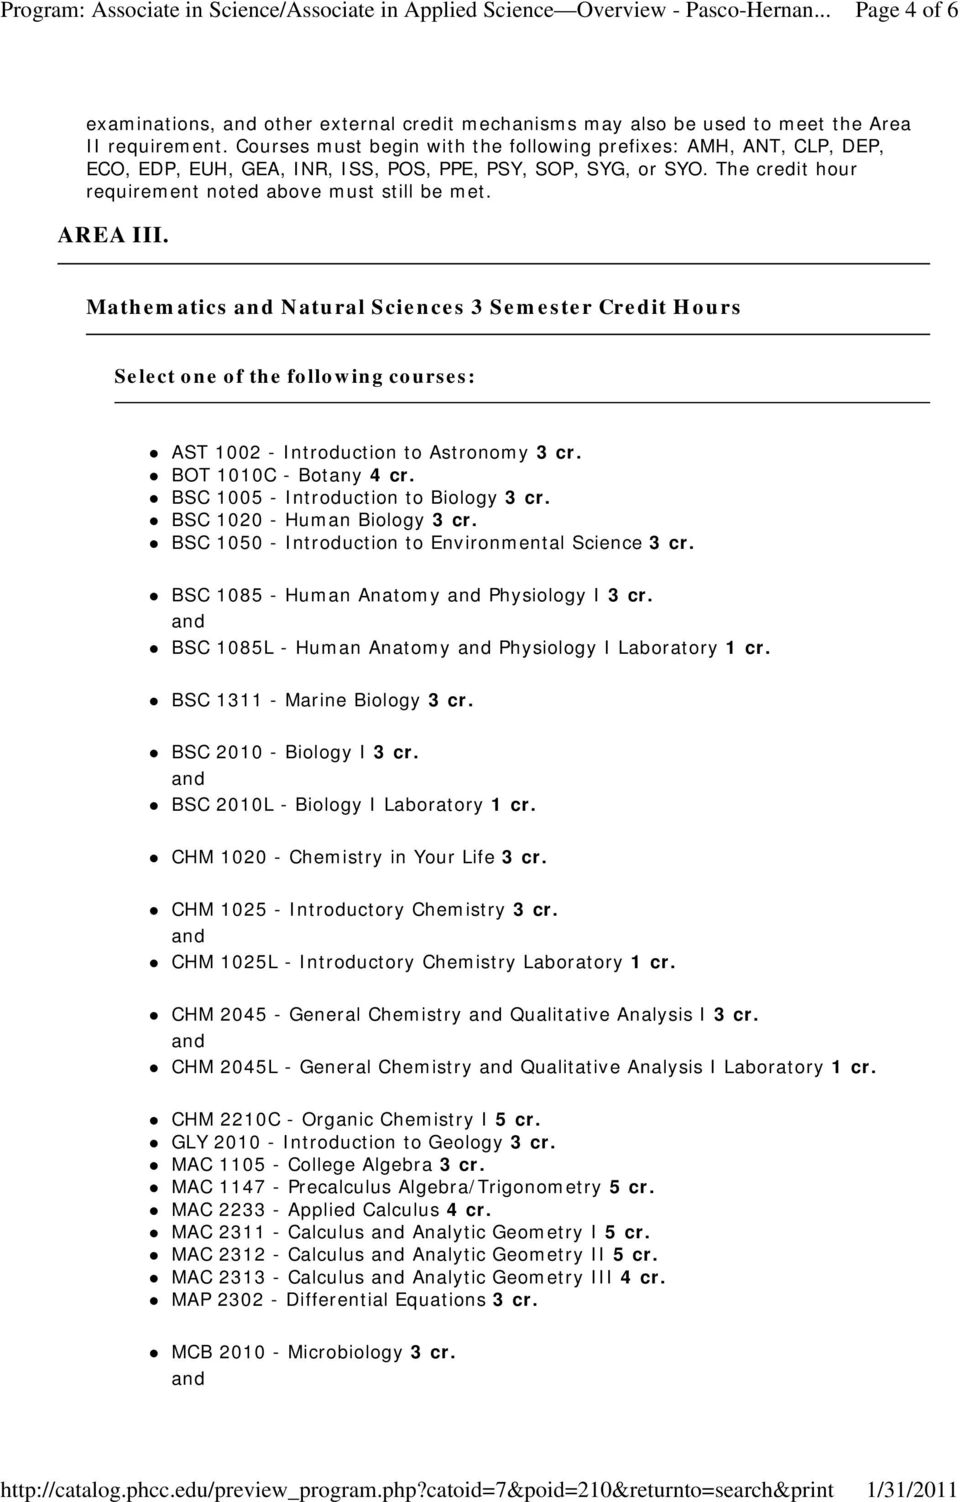 Mathematics Natural Sciences 3 Semester Credit Hours AST 1002 - Introduction to Astronomy 3 cr. BOT 1010C - Botany 4 cr. BSC 1005 - Introduction to Biology 3 cr. BSC 1020 - Human Biology 3 cr.